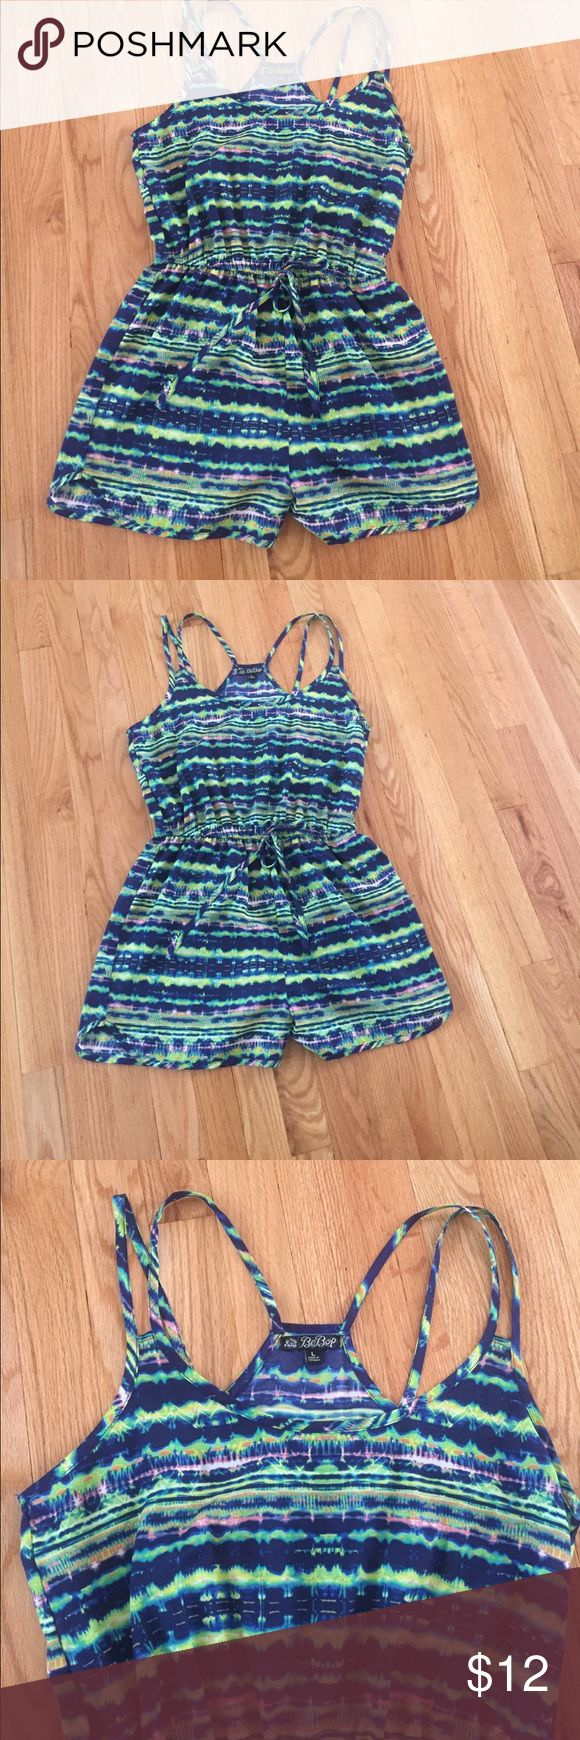 Multi Color Short Romper Multi color Short's Romper. Romper has double skinny straps & drawstring waist. Beautiful colors. In excellent condition Be Bop Pants Jumpsuits & Rompers